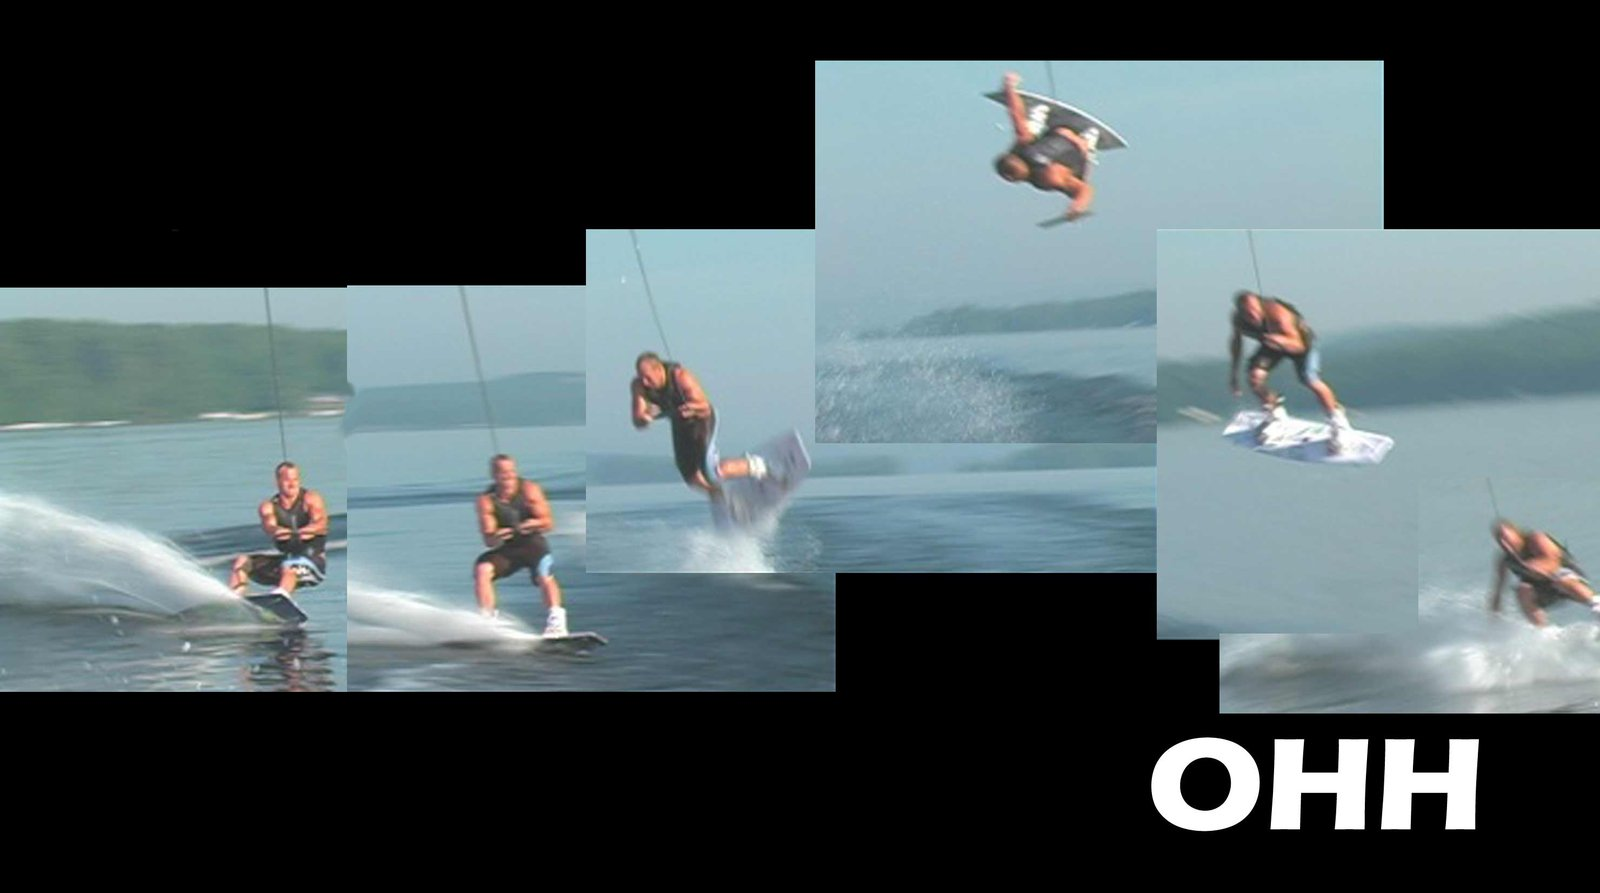 wakeboard OHH sequence